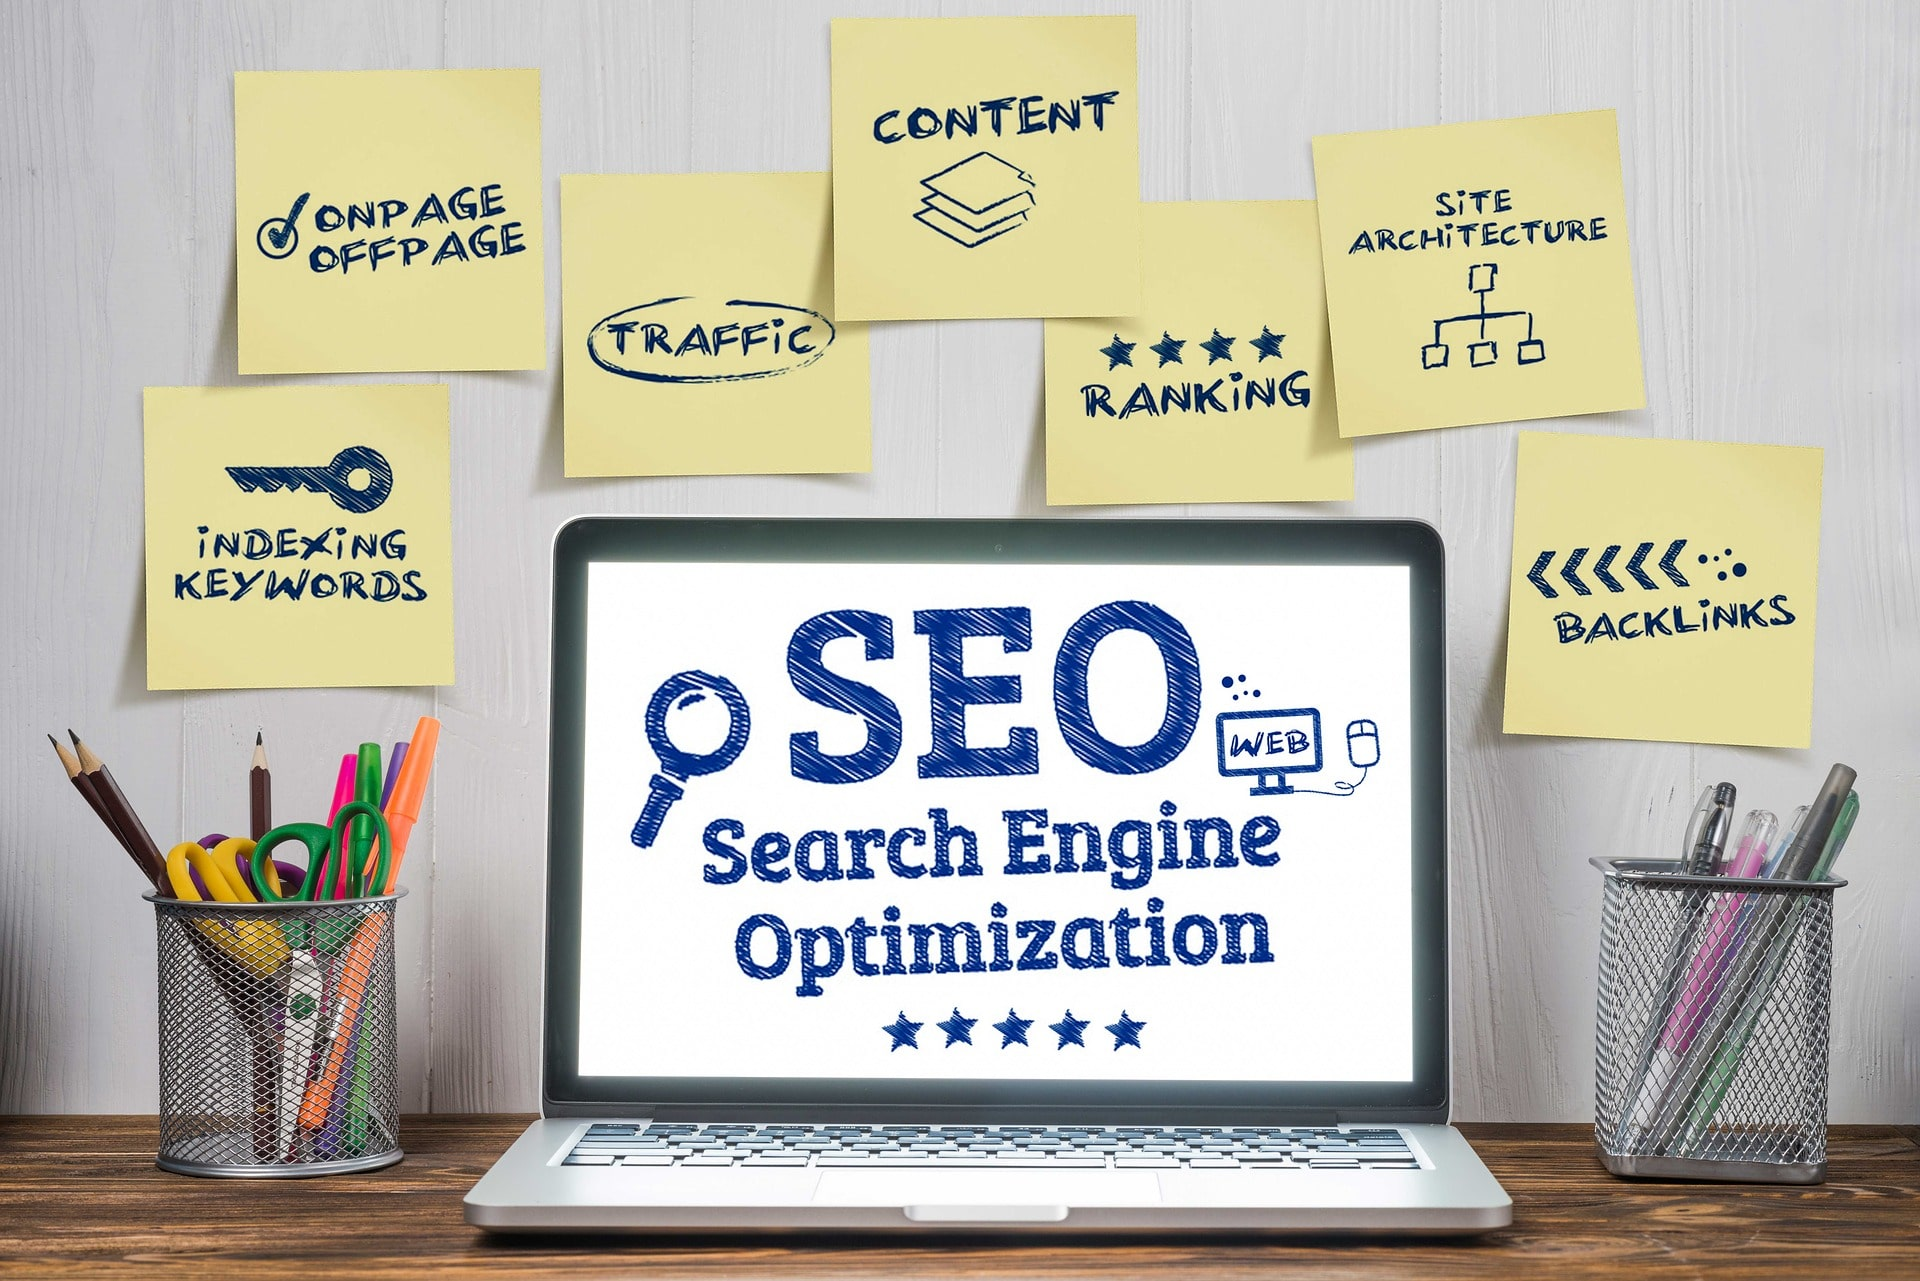 https://www.creamerito.com/wp-content/uploads/2019/08/search-engine-optimization-4111000_1920-min.jpg